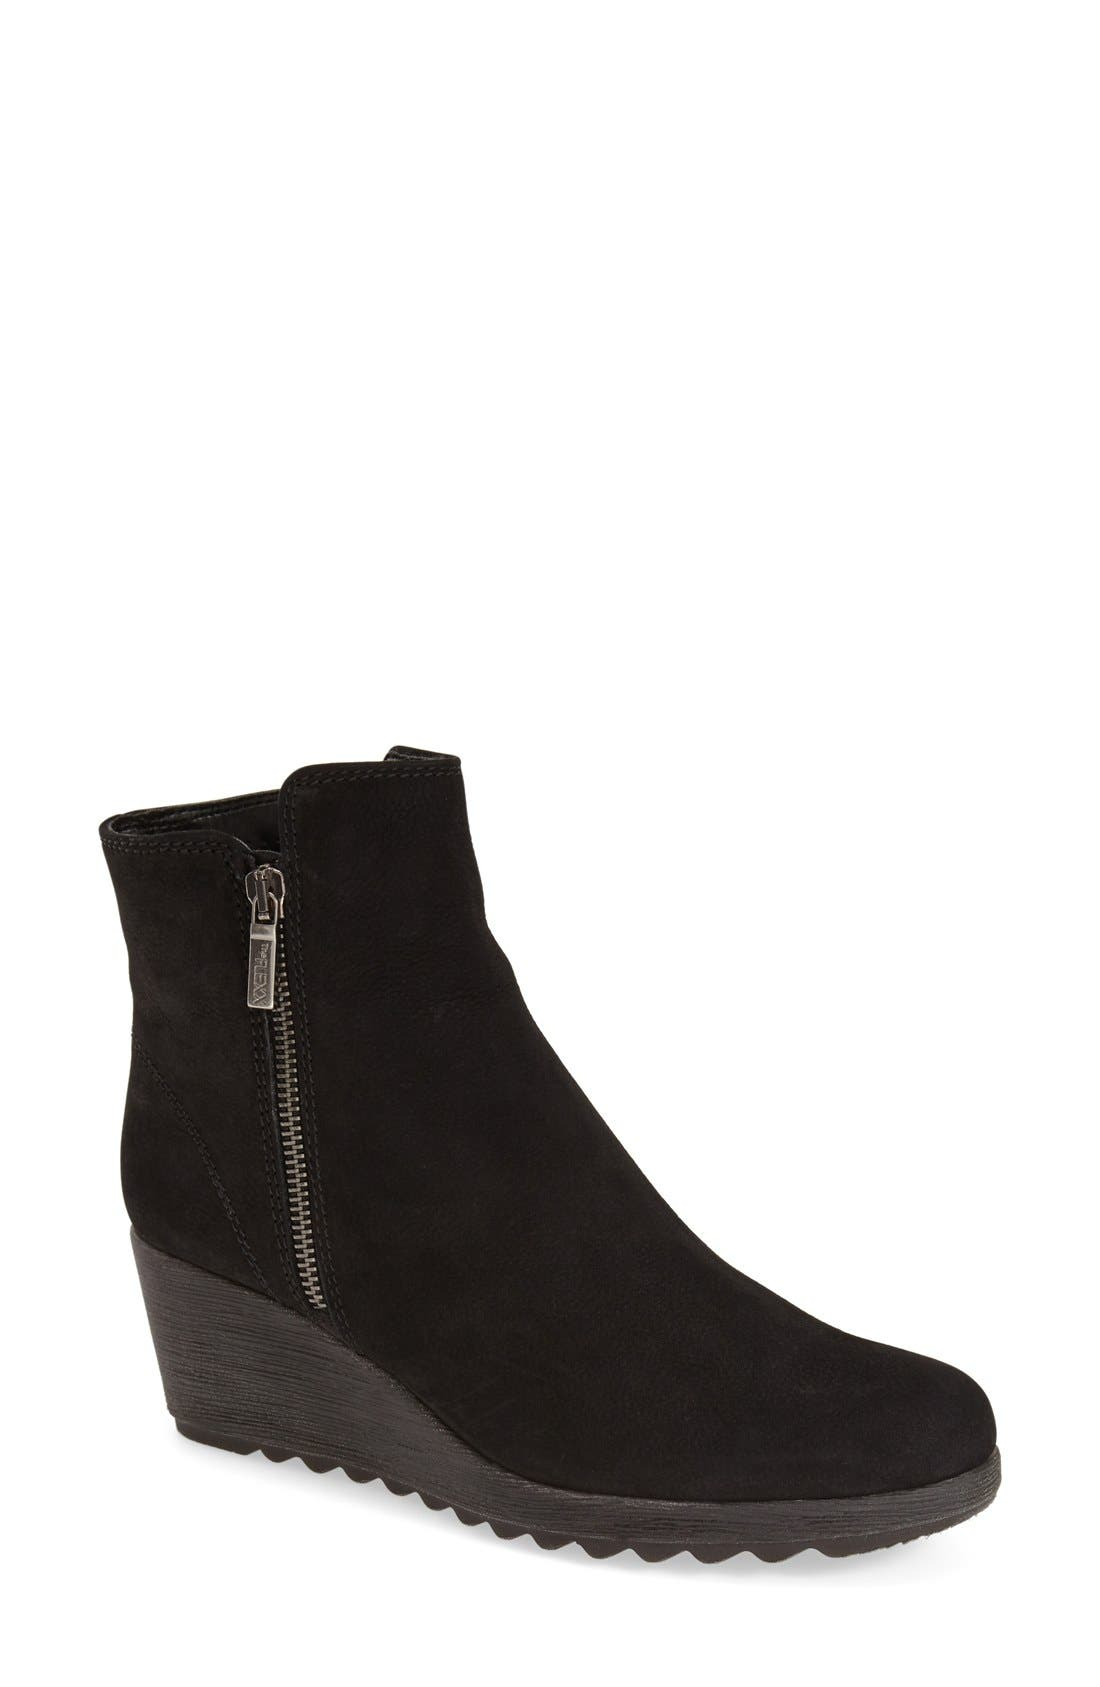 THE FLEXX 'Pic a Winner' Wedge Bootie, Main, color, 013